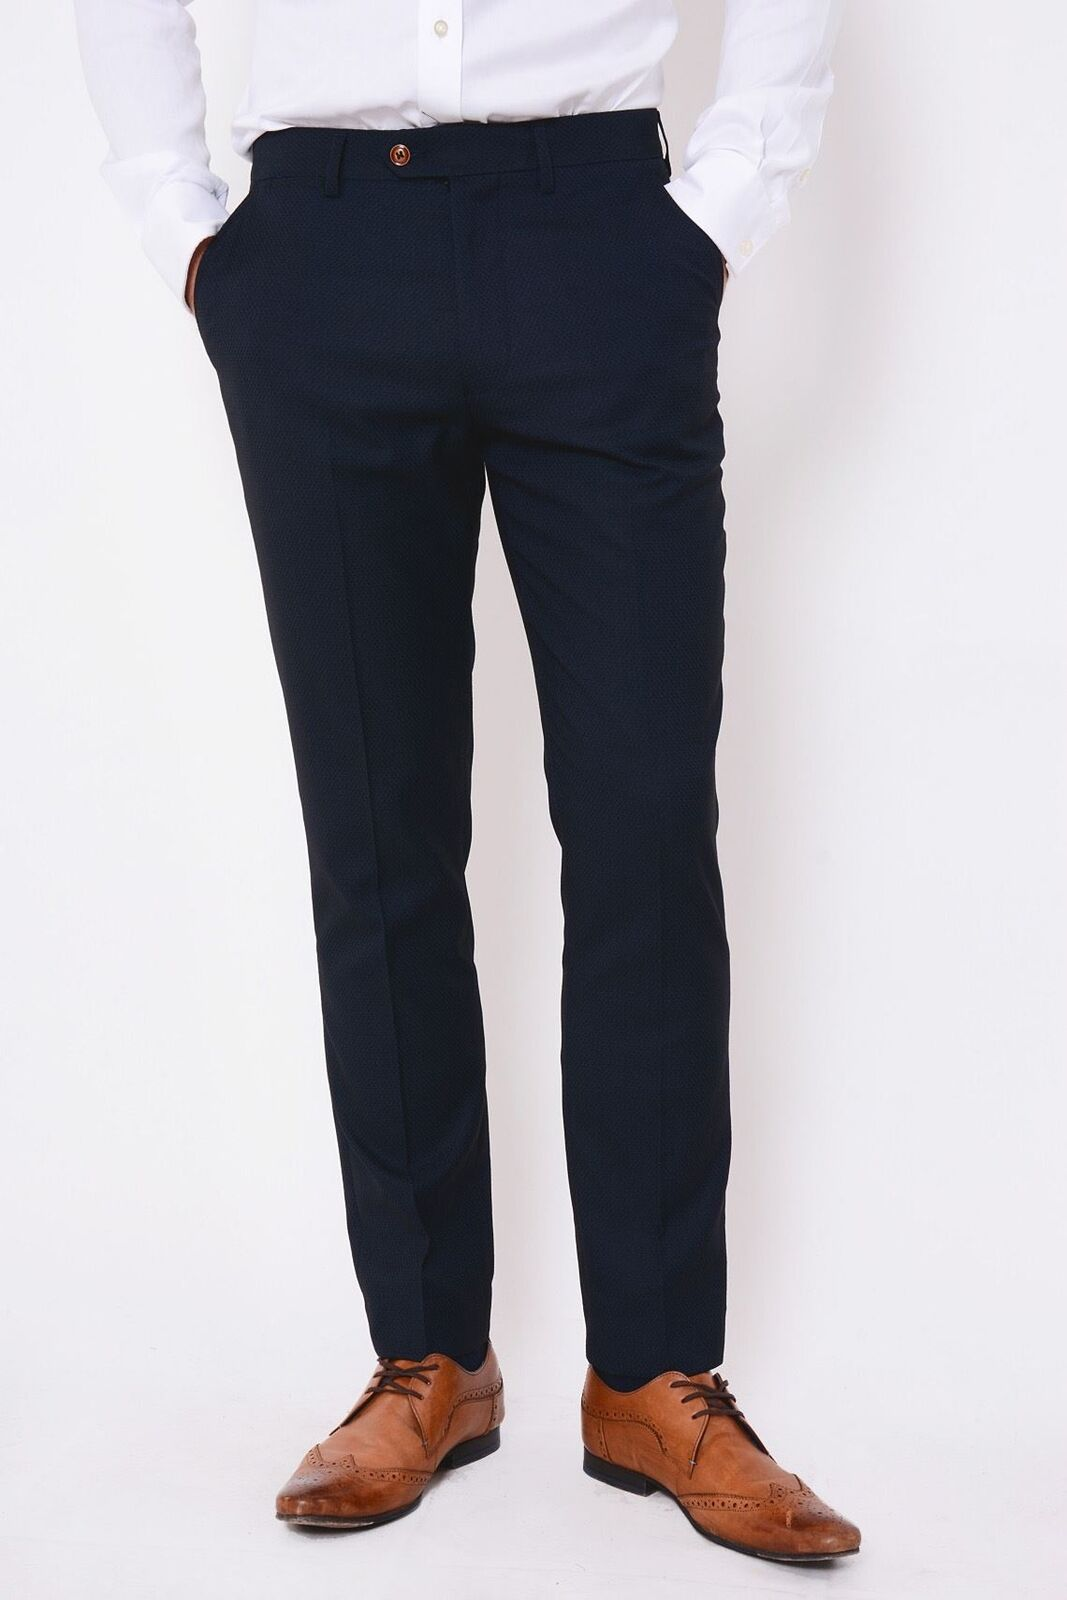 Mens Navy Formal Trousers Marc Darcy Slim Fit Tailored Smart Business Pants